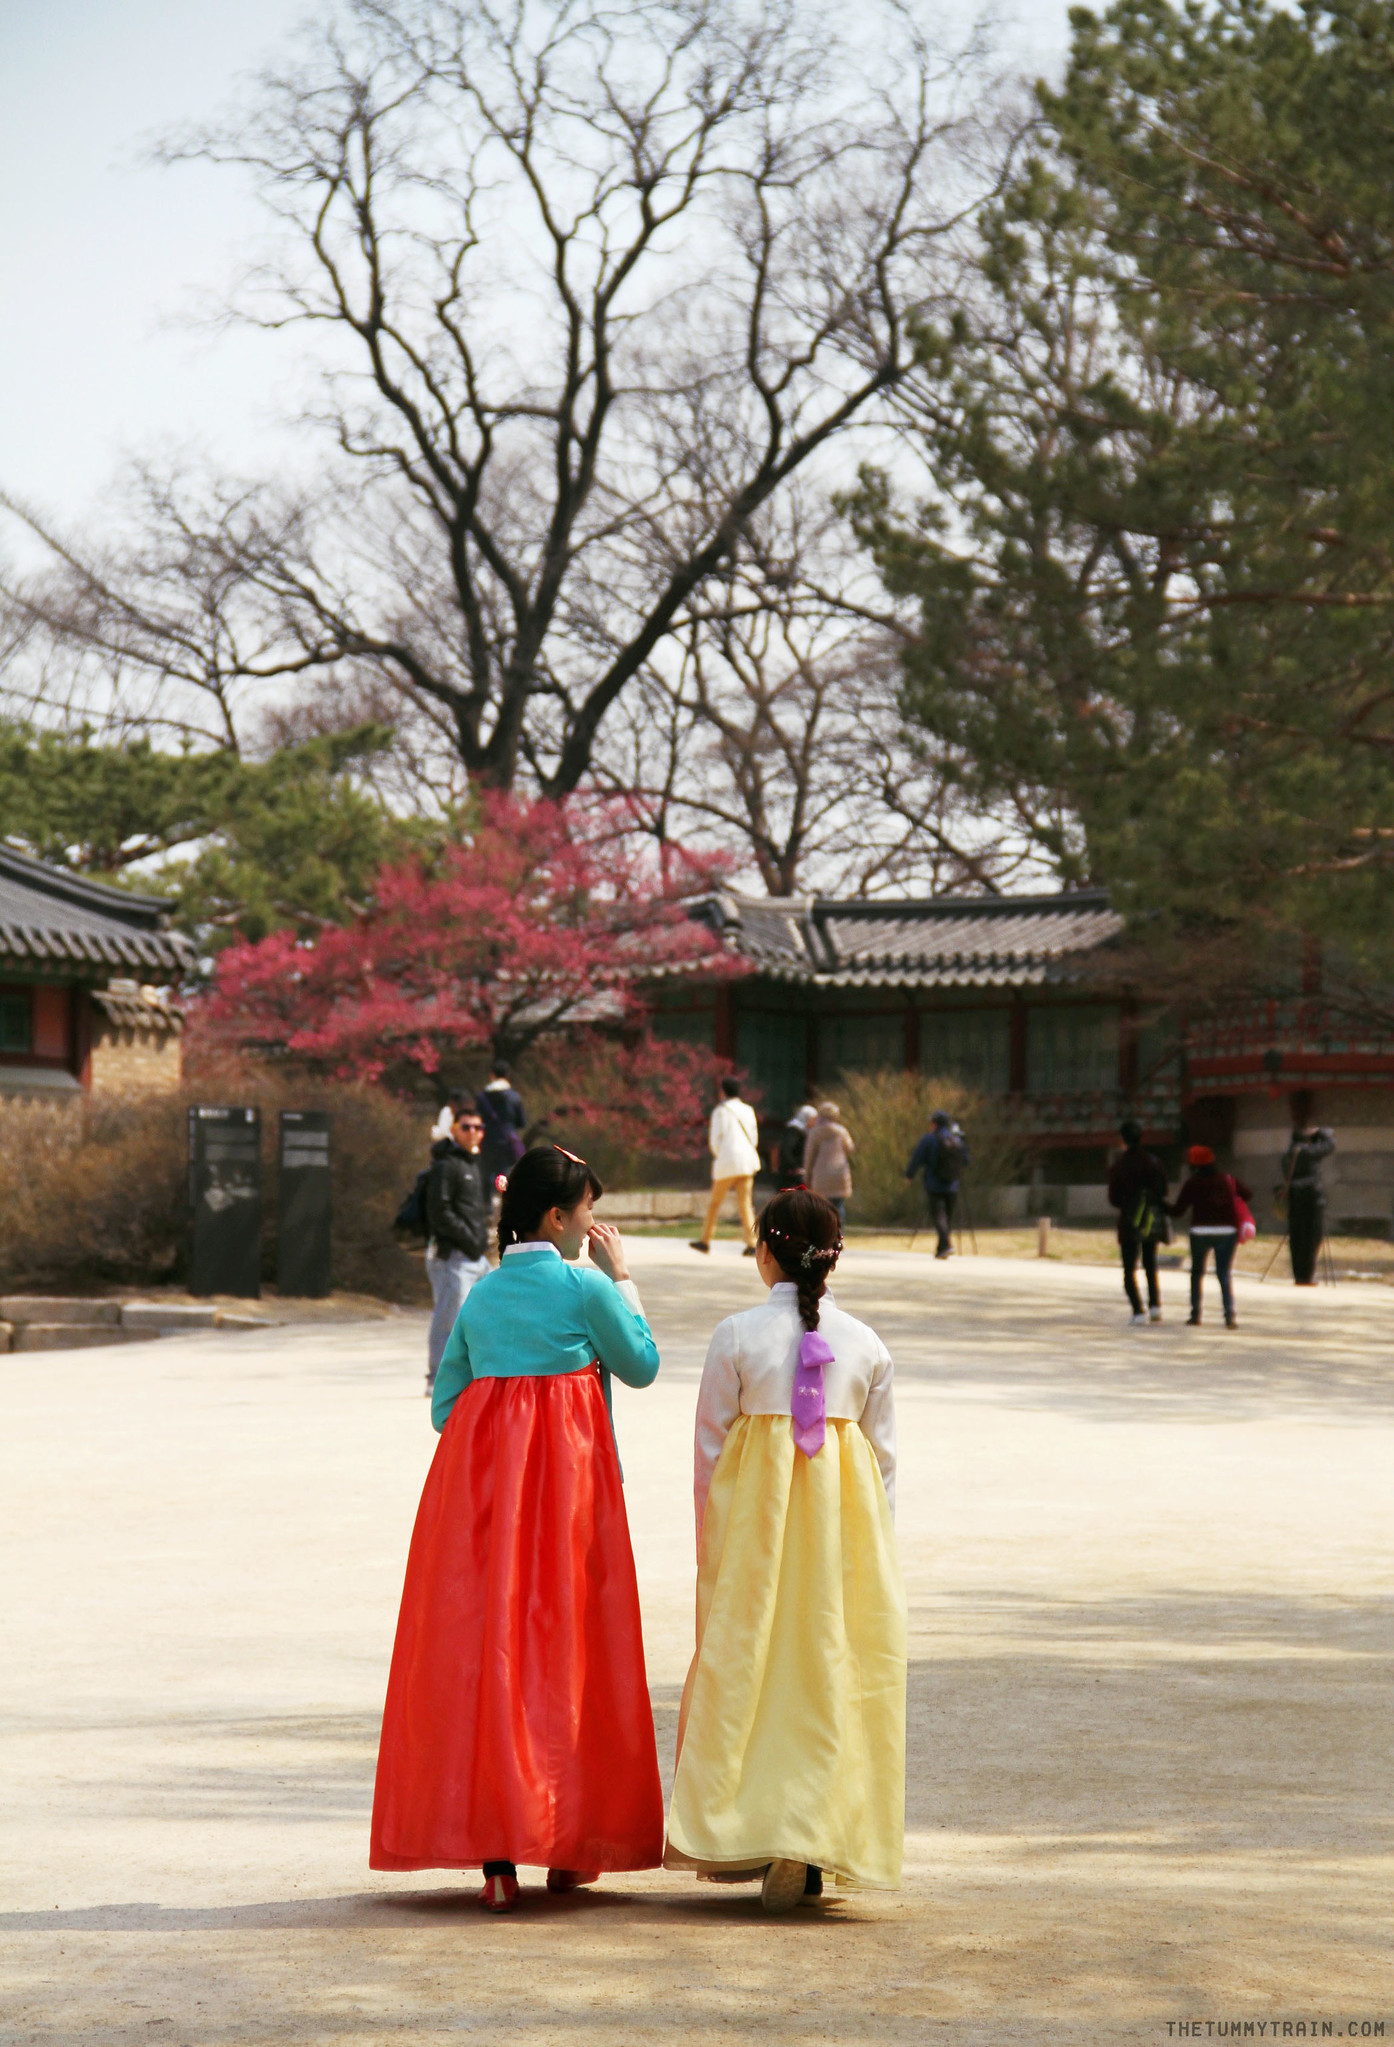 33489205726 ddcf11afdb k - Seoul-ful Spring 2016: Greeting the first blooms at Changdeokgung Palace